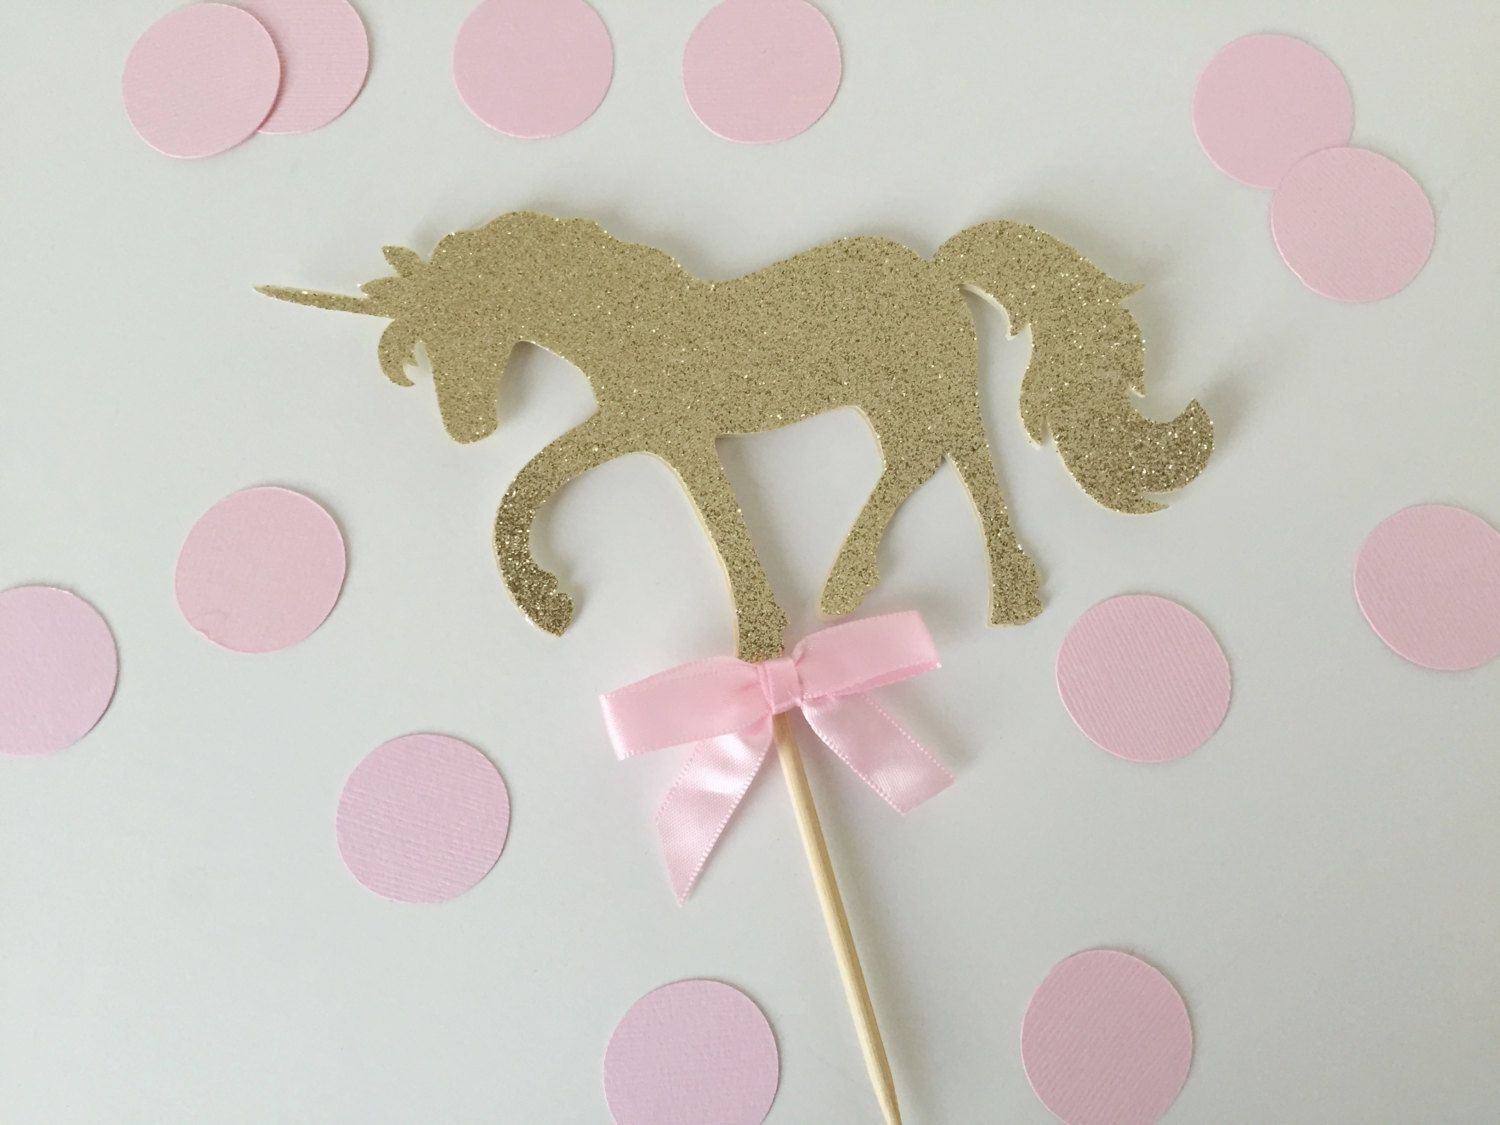 Gold Birthday Decorations Pink And Gold Unicorn Cake Topper Birthday Party Decorations